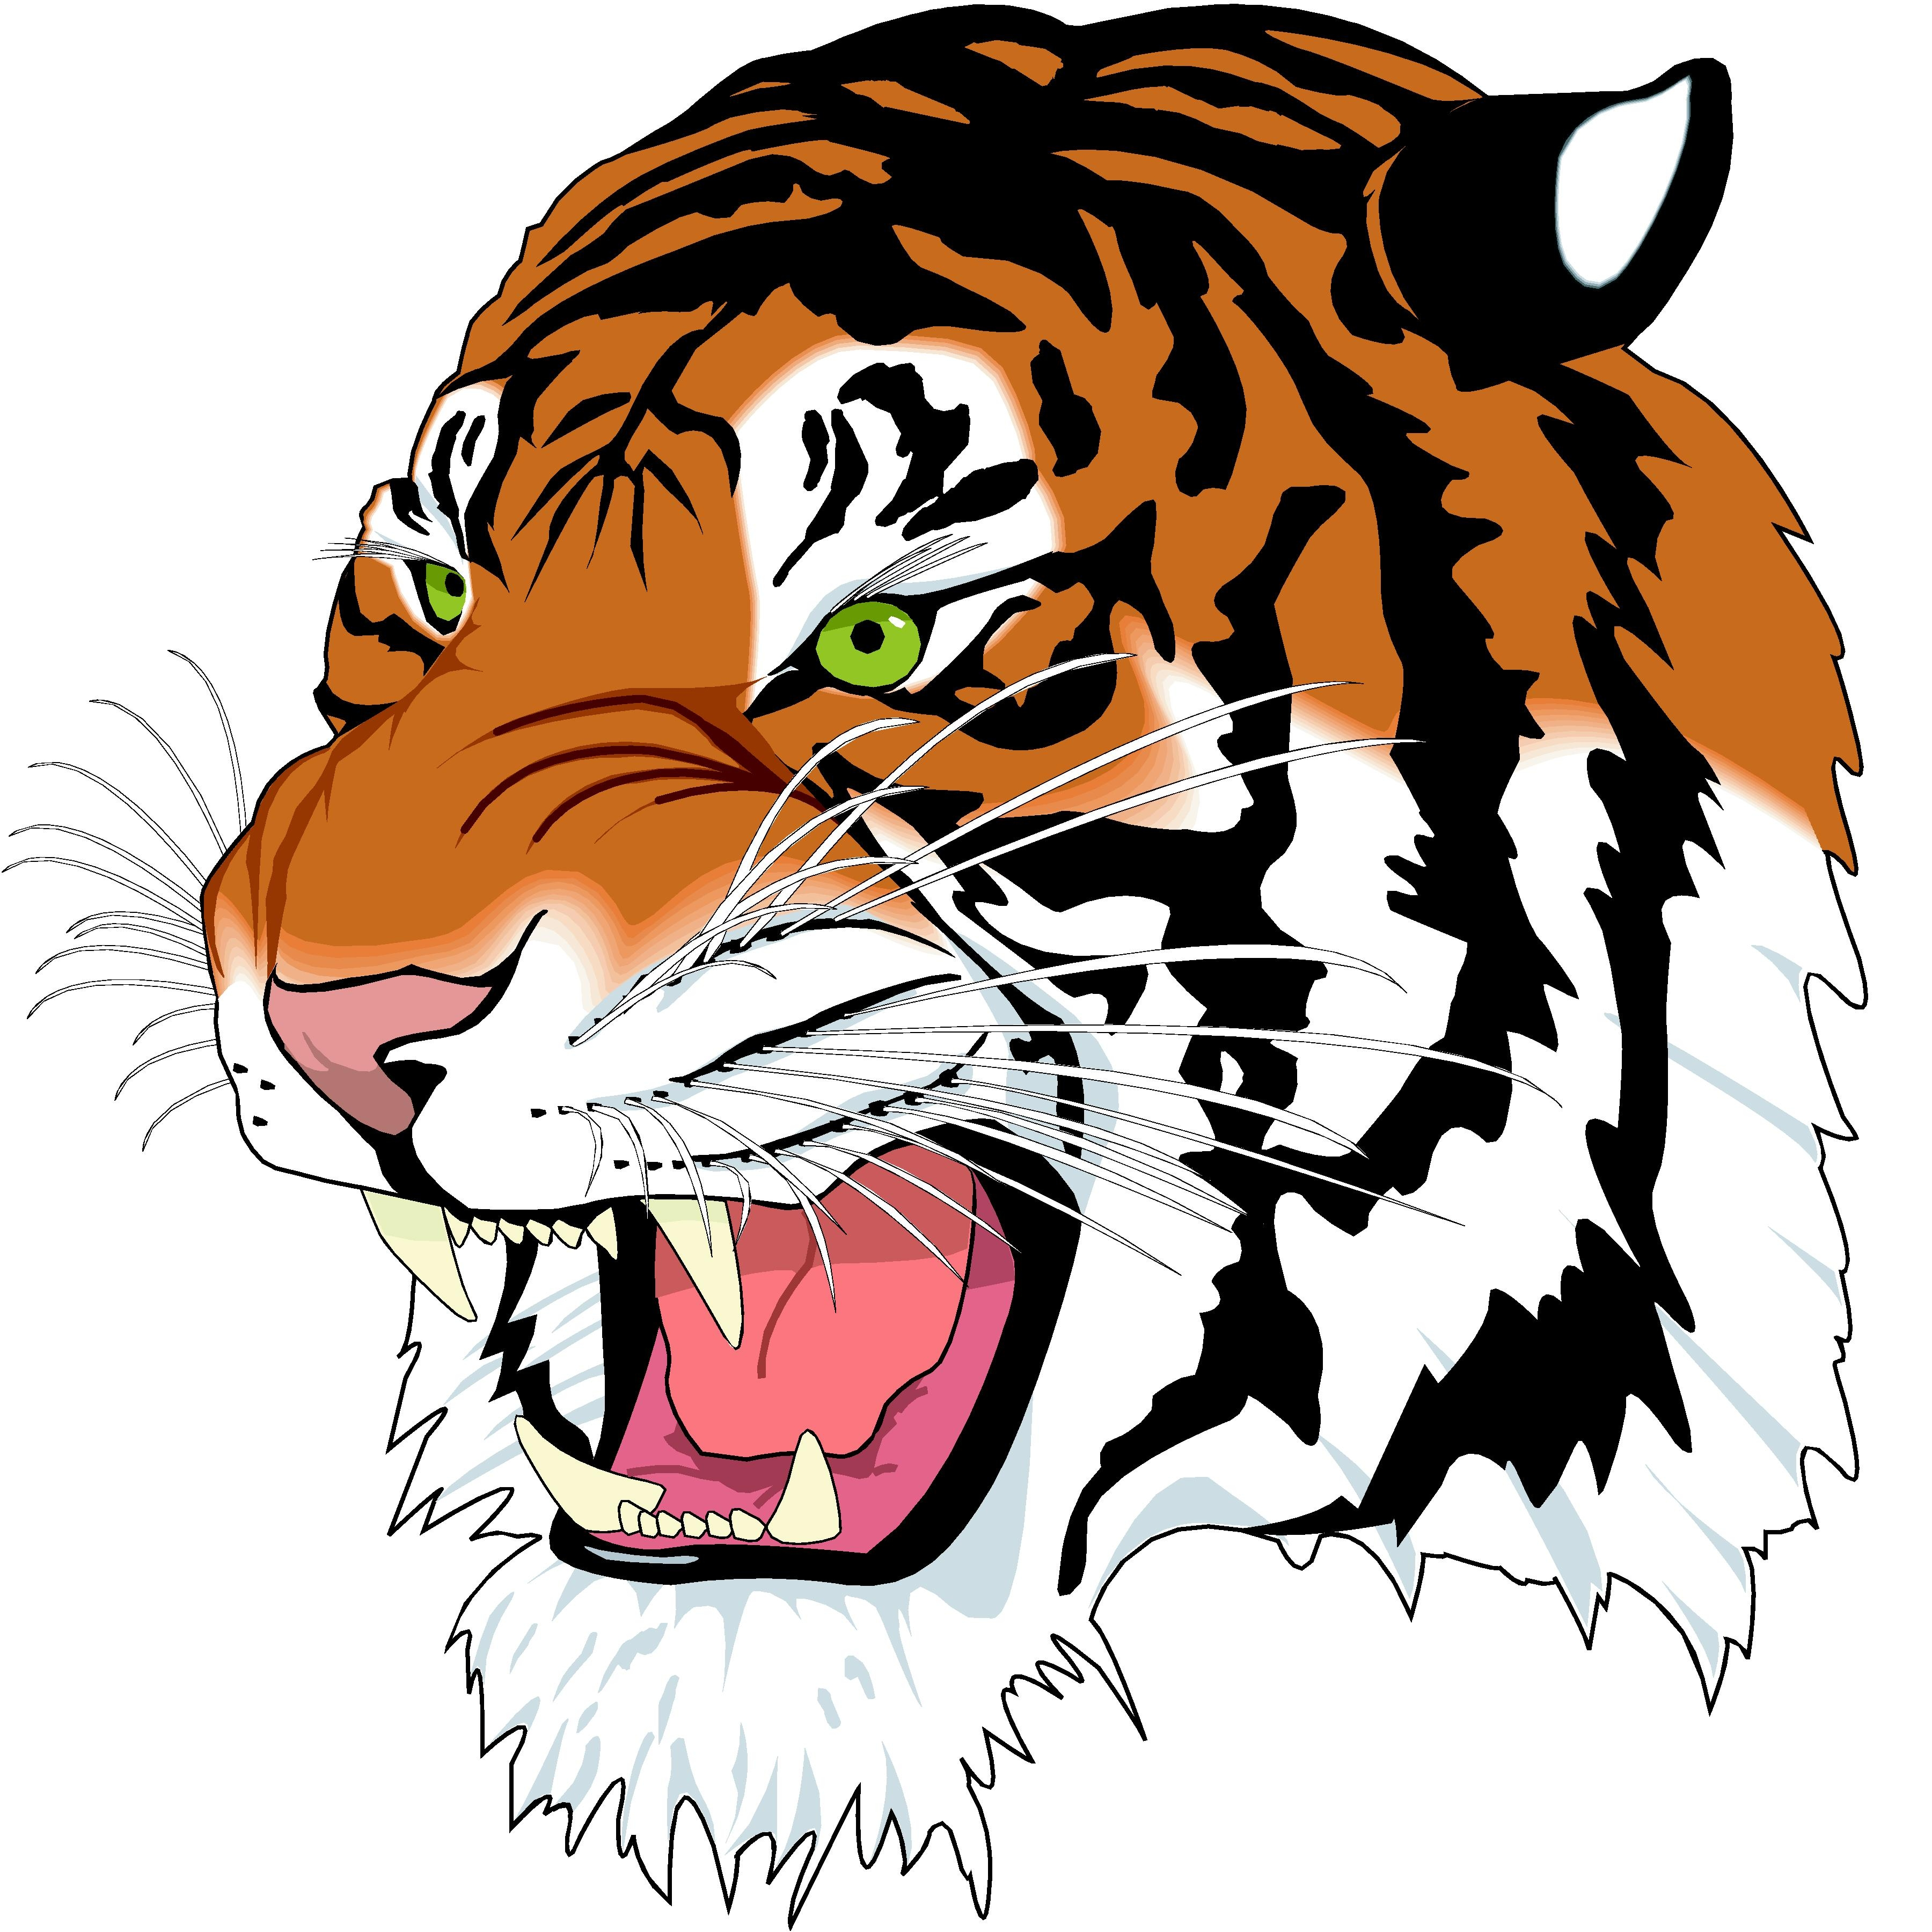 Tiger logo cliparts free download clip art on.